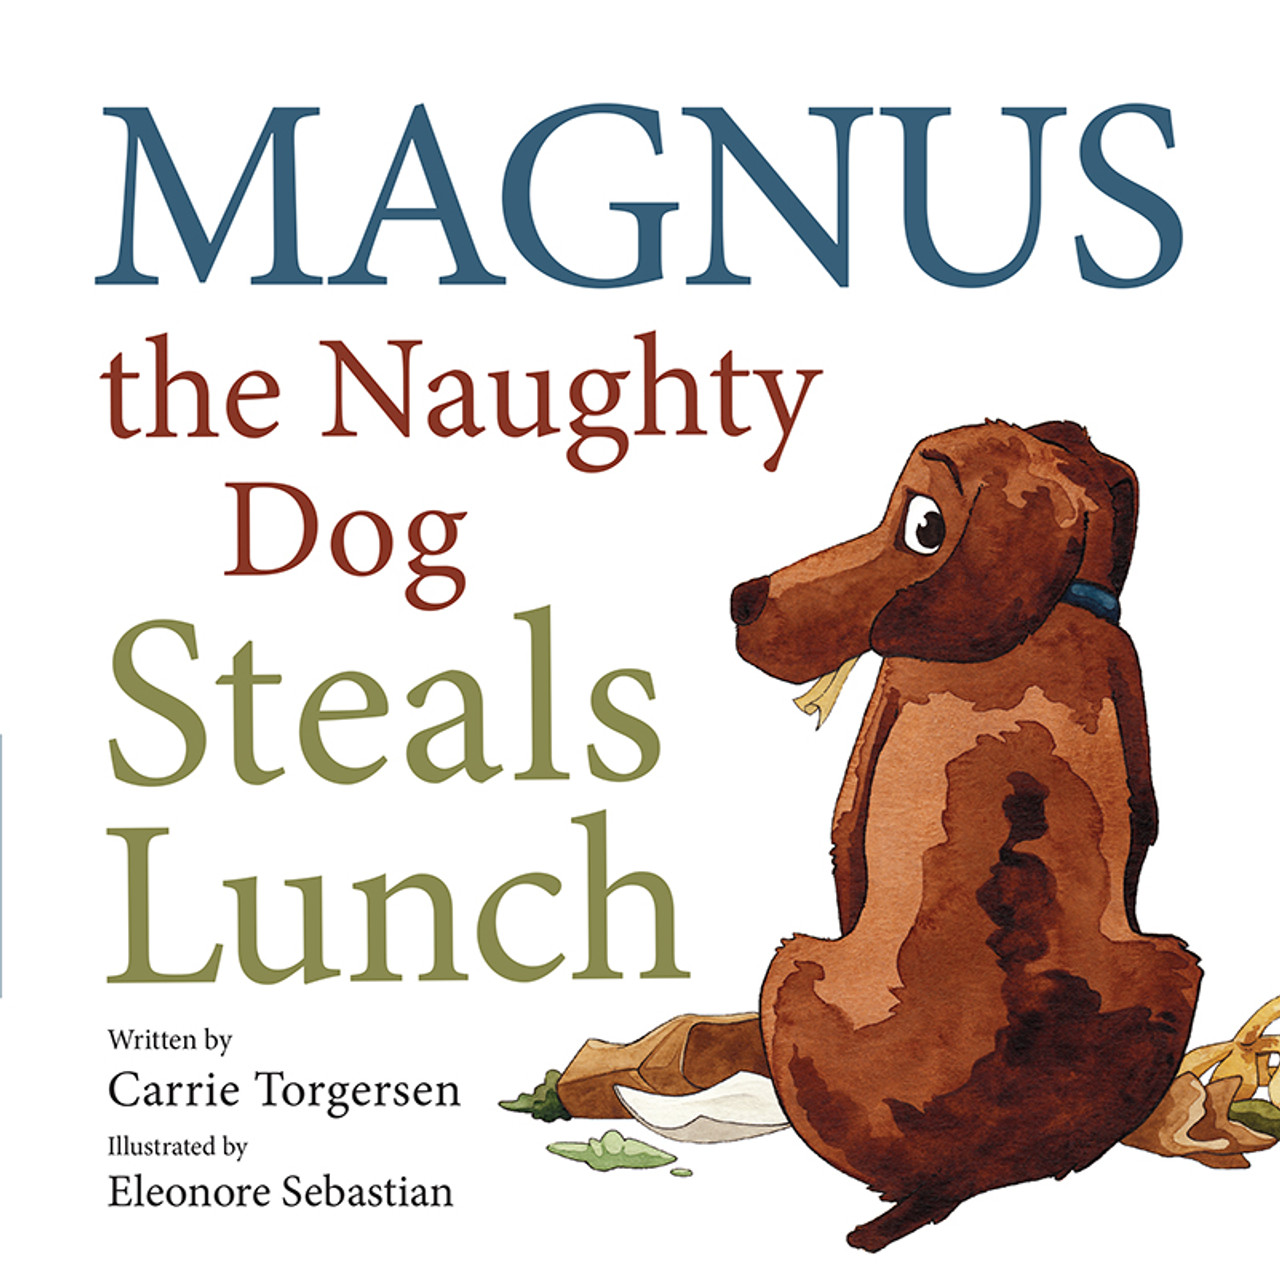 Magnus the Naughty Dog Steals Lunch